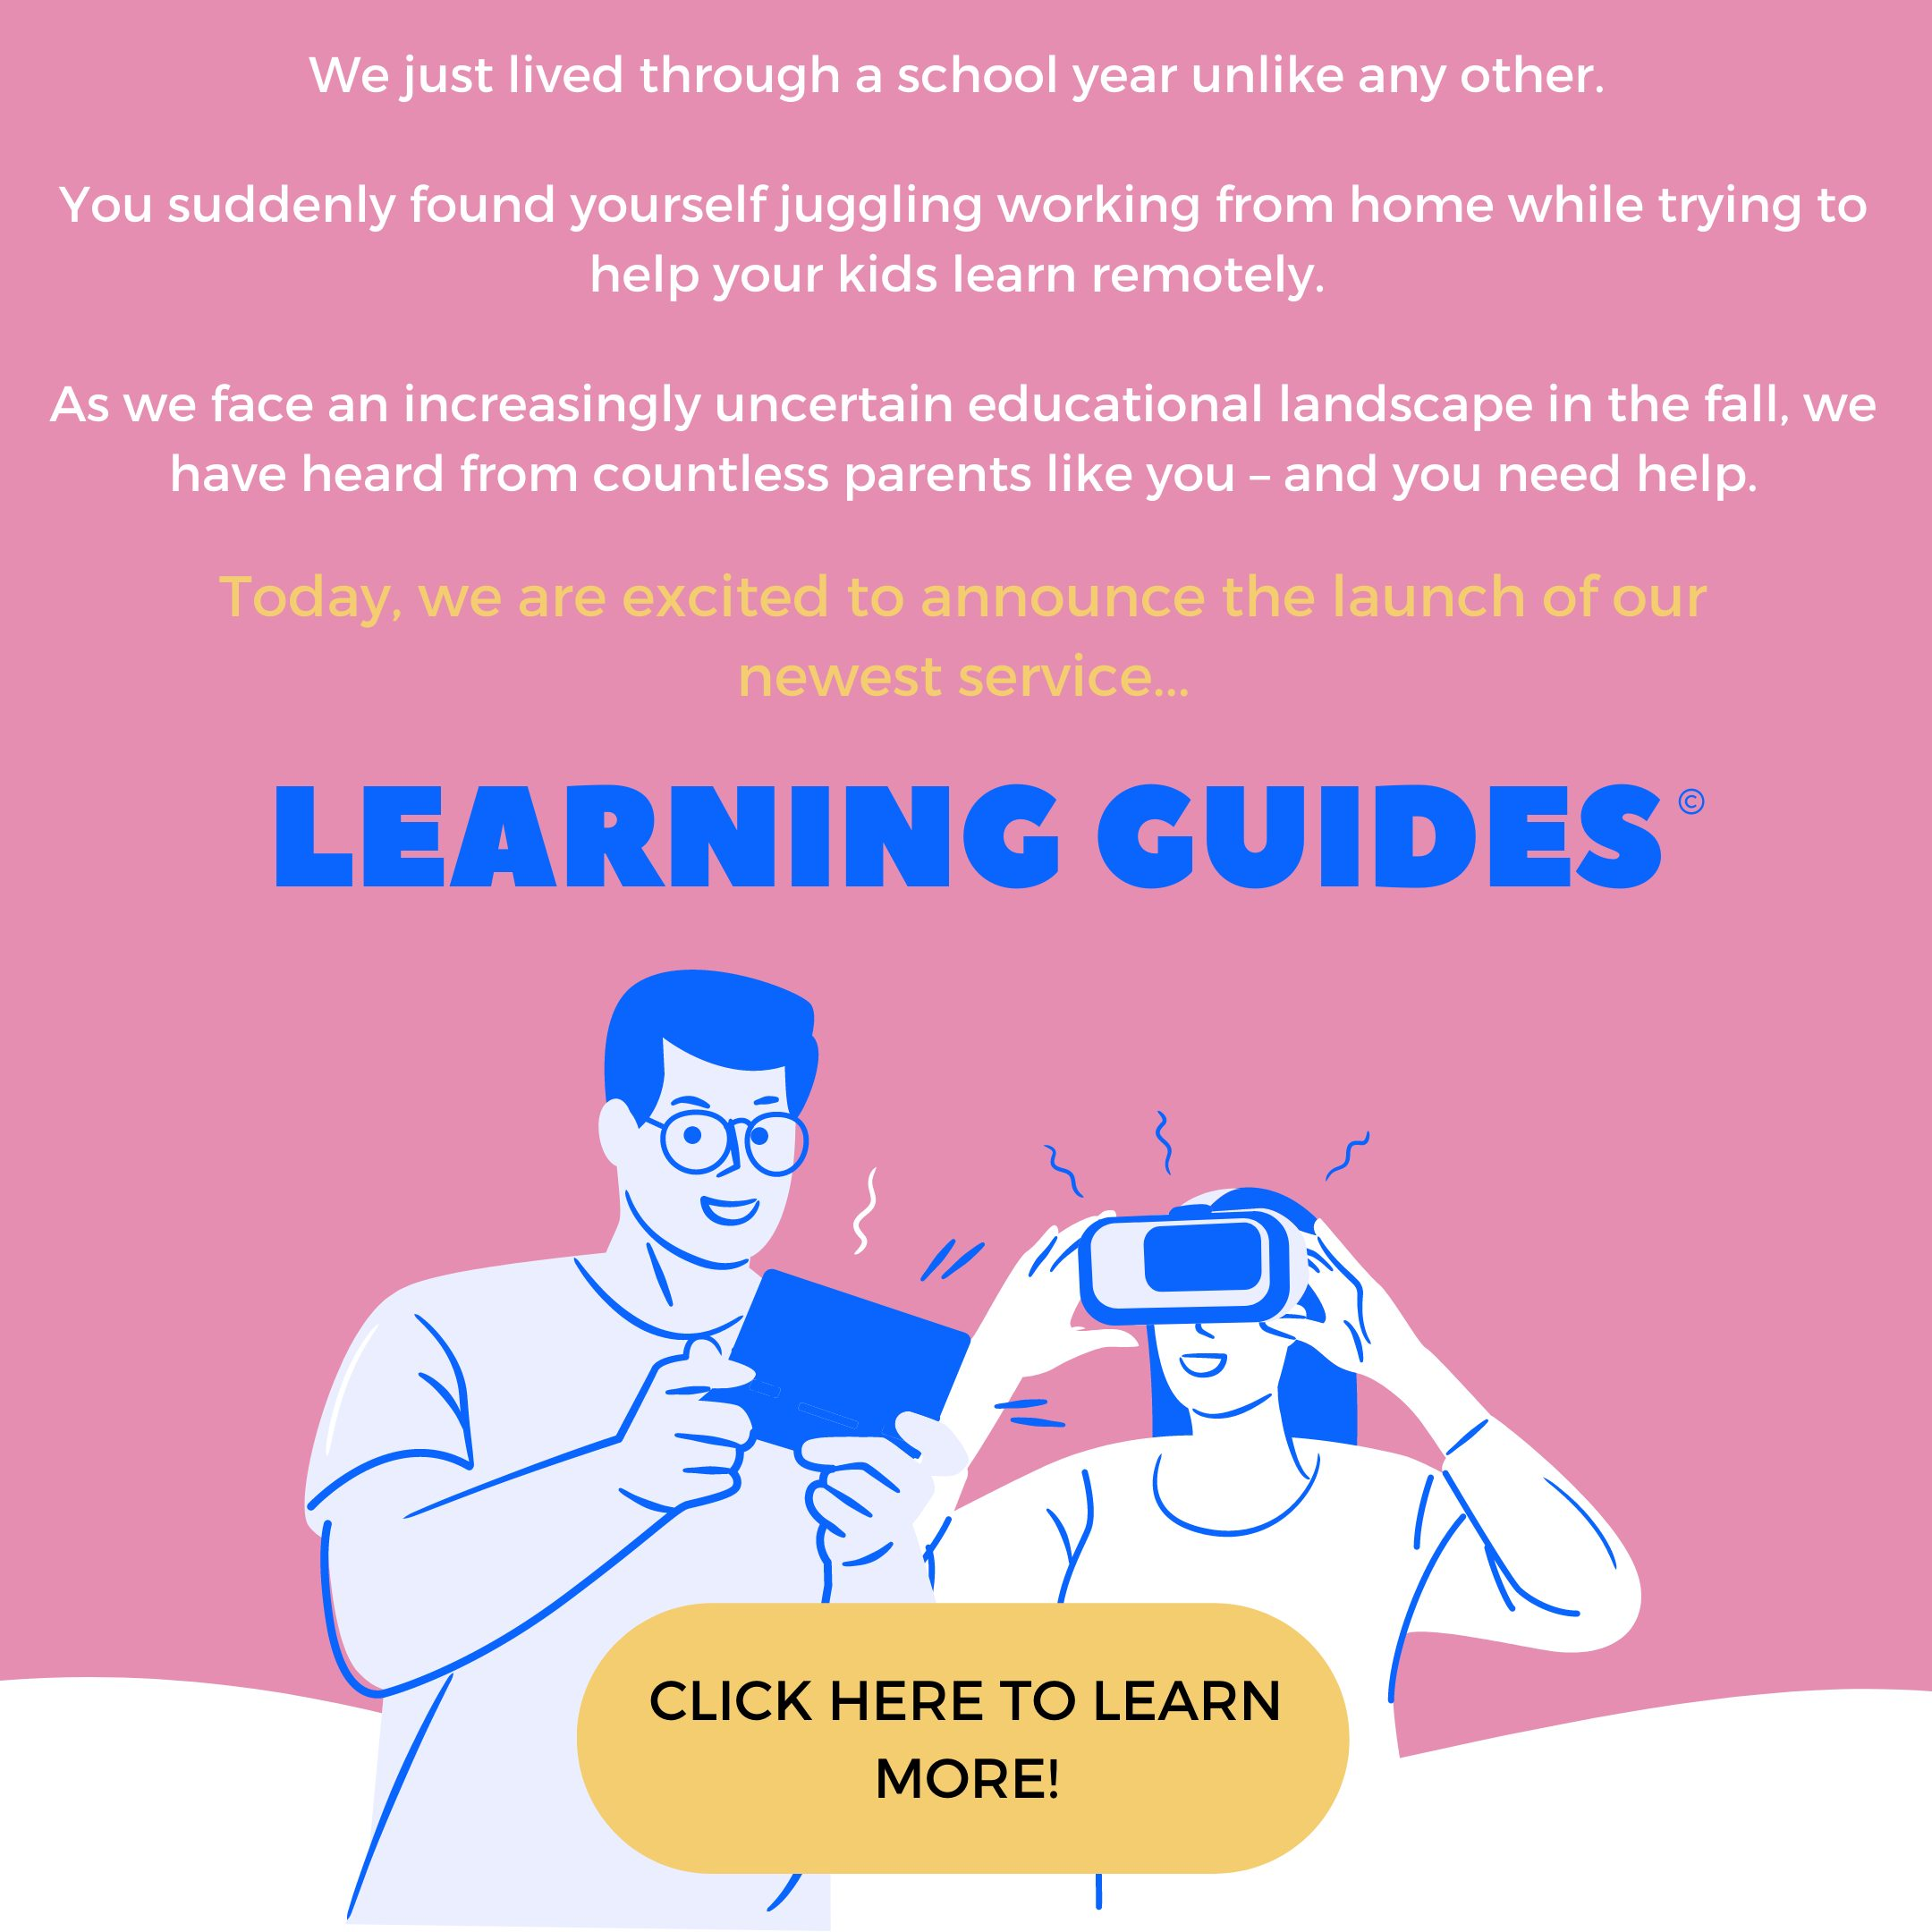 Learning Guides